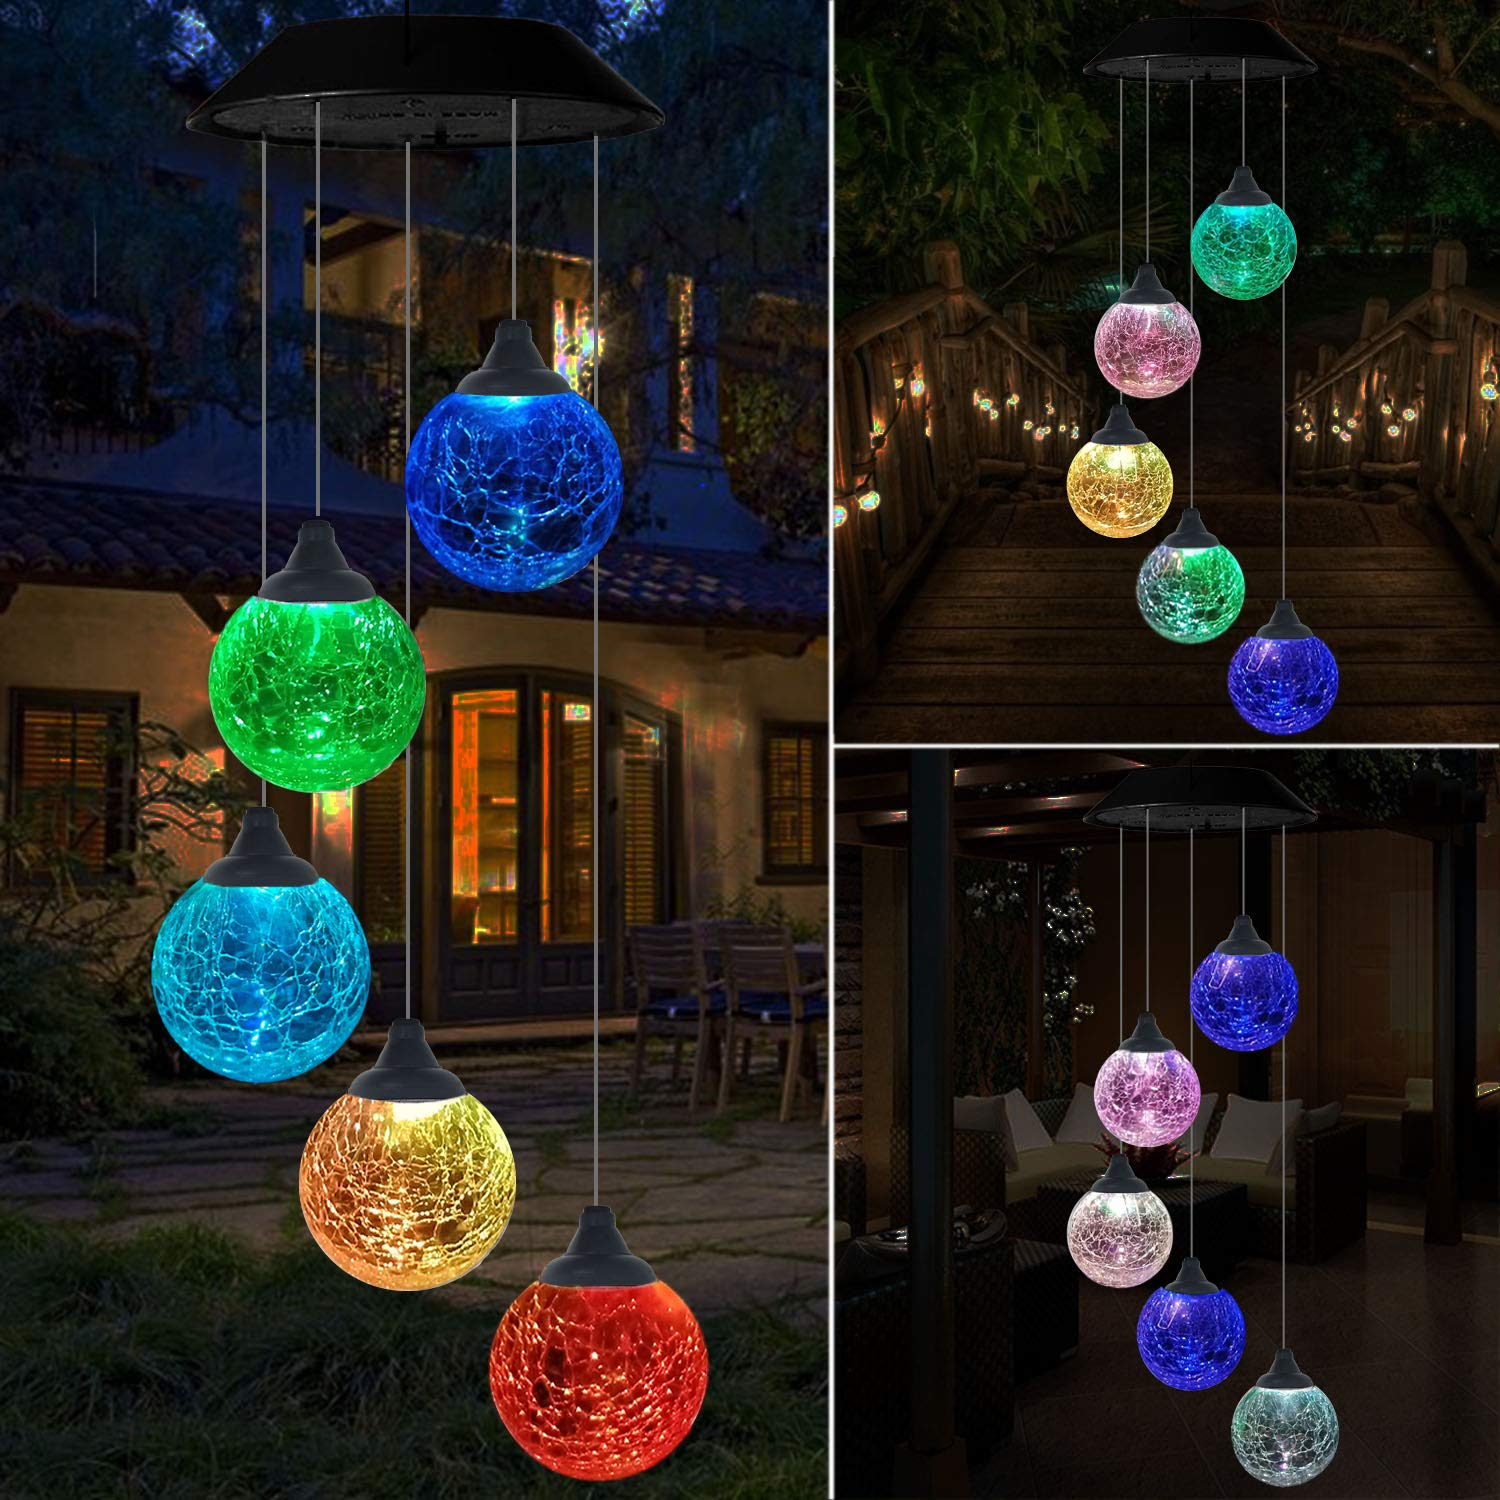 Eutreec Solar Globe Wind Chime Outdoor, Cracked Glass 5 Balls Color Changing Wind Mobile Waterproof Outdoor Decorative Romantic Wind Bell Light Hanging Lamp for Patio Yard Garden Home